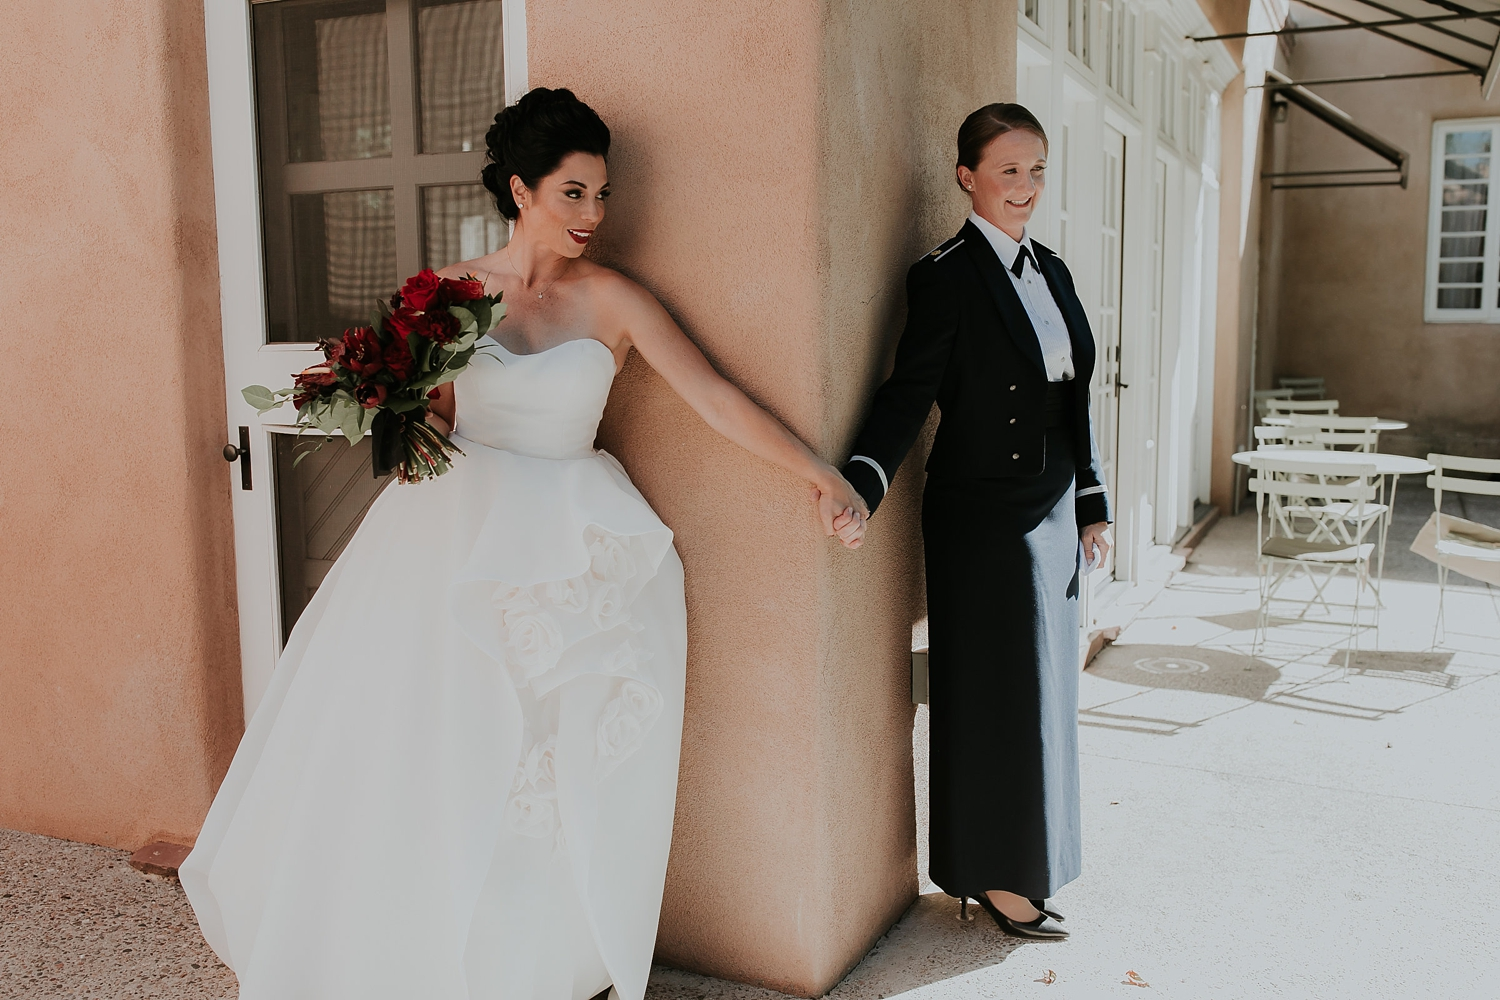 Alicia+lucia+photography+-+albuquerque+wedding+photographer+-+santa+fe+wedding+photography+-+new+mexico+wedding+photographer+-+los+poblanos+wedding+-+los+poblanos+fall+wedding+-+los+poblanos+october+wedding_0040.jpg